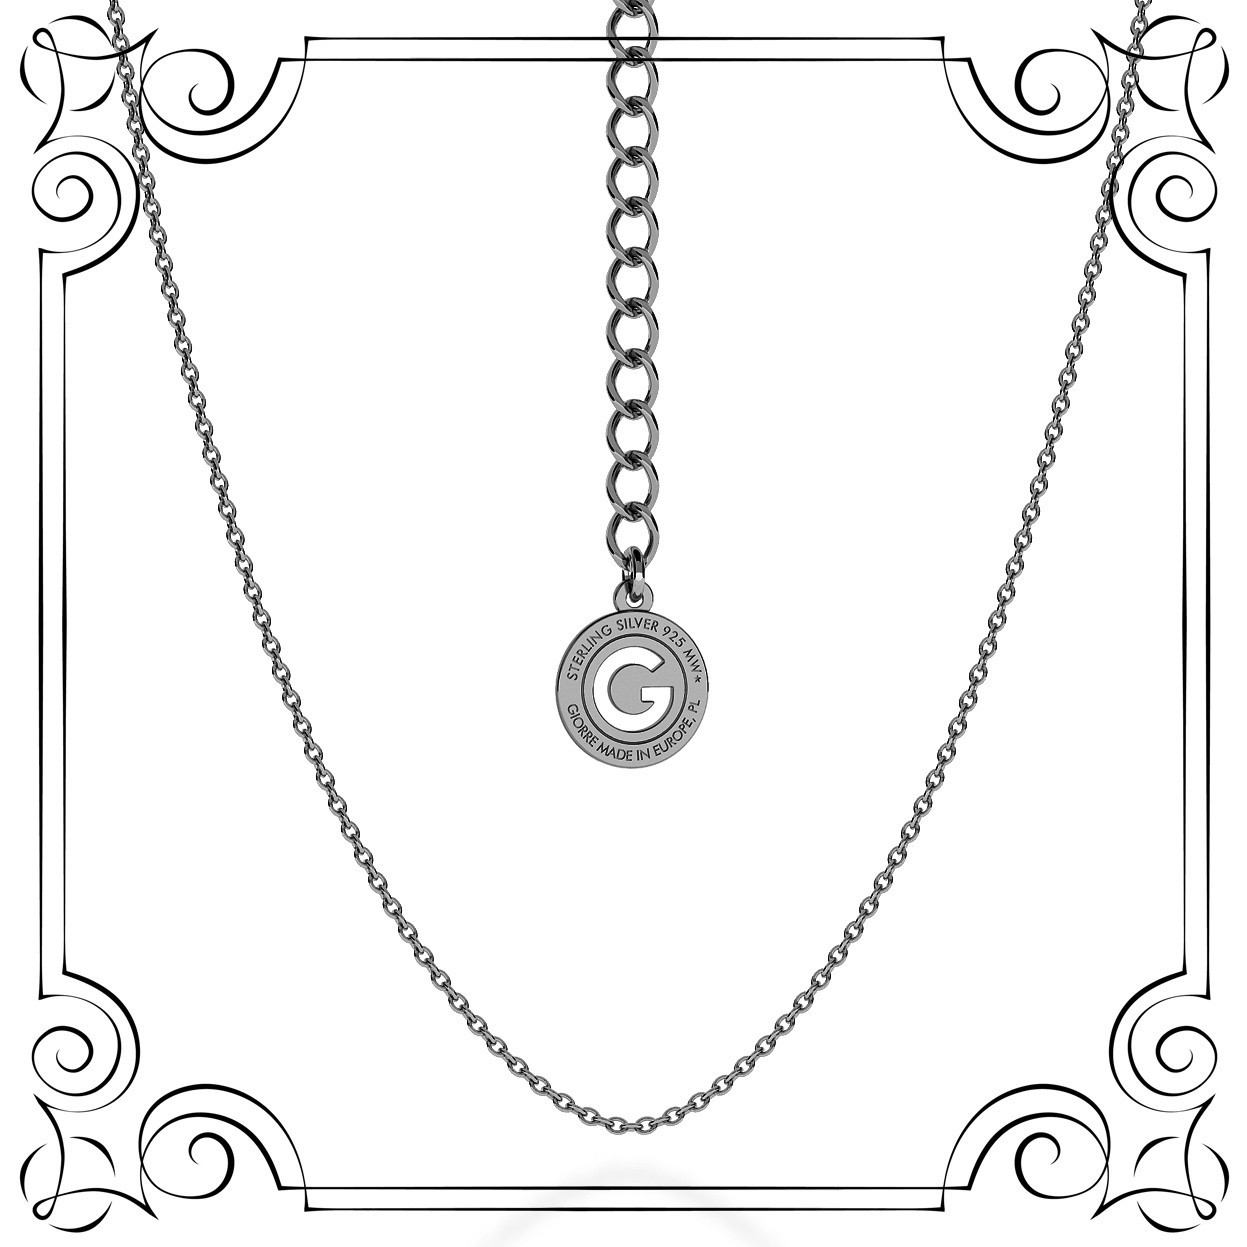 LIGHT SILVER NECKLACE 55 CM, RHODIUM PLATED (BLACK RHODIUM)